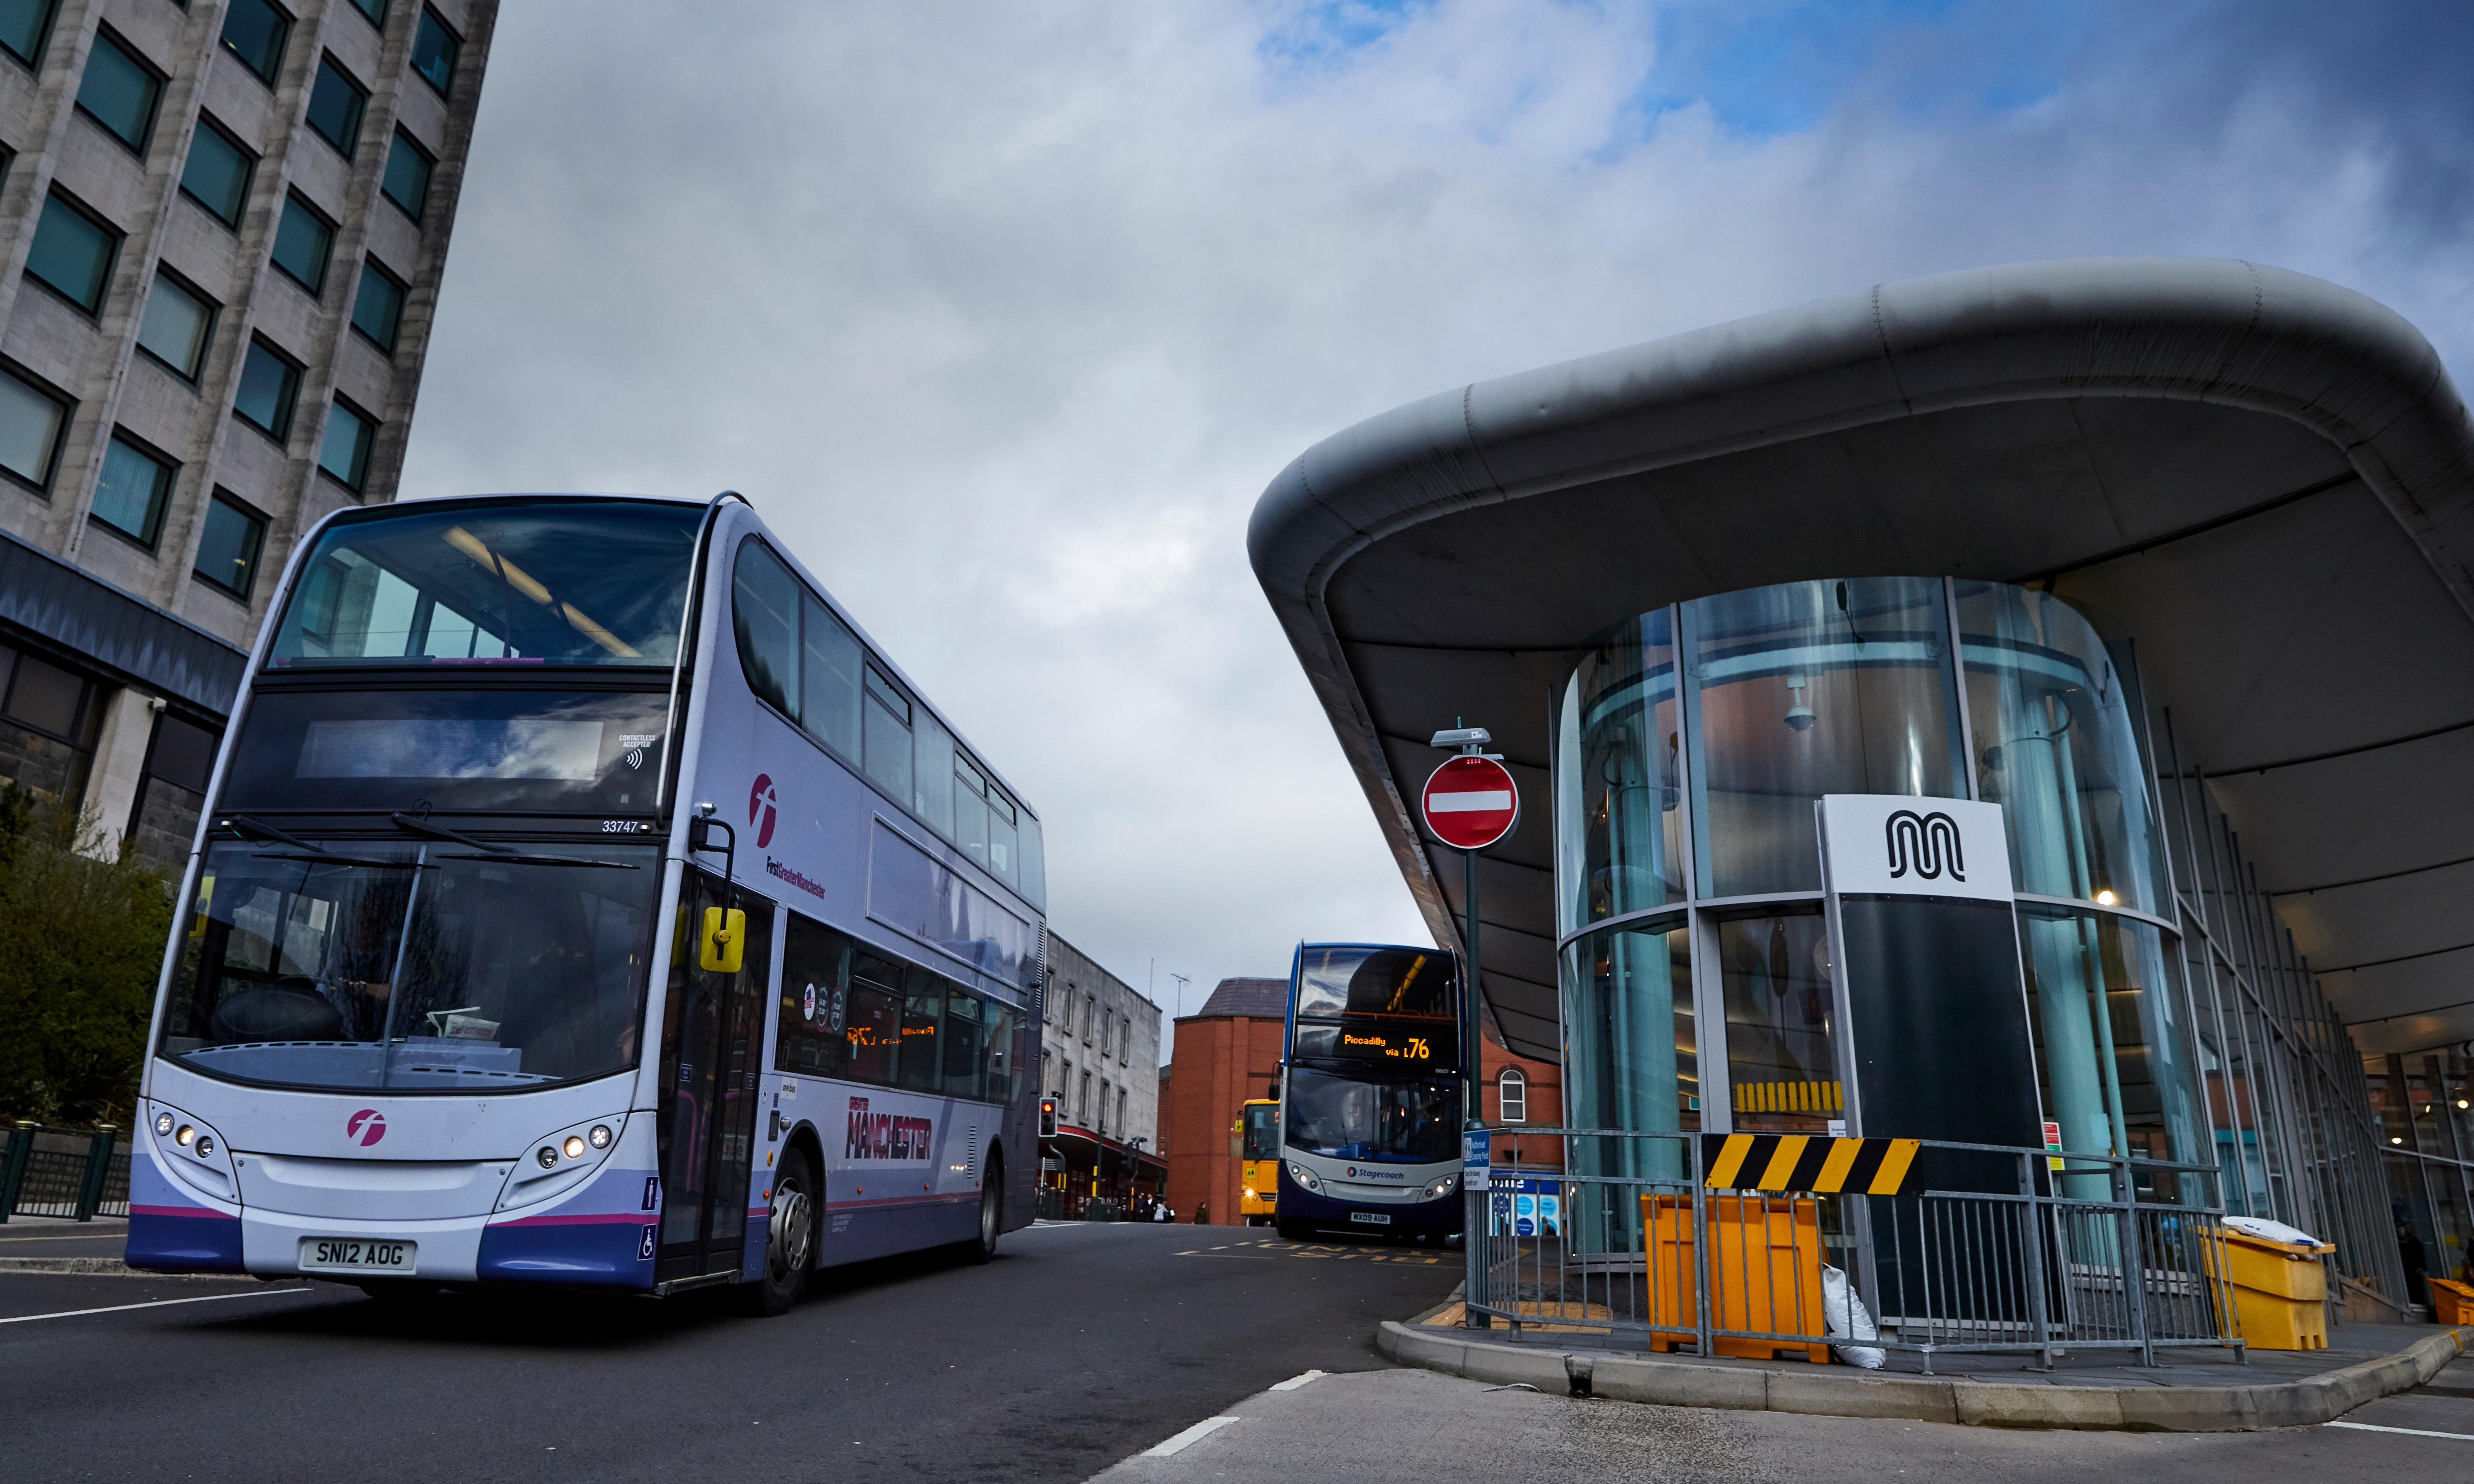 Greater Manchester considers taking back control of bus network